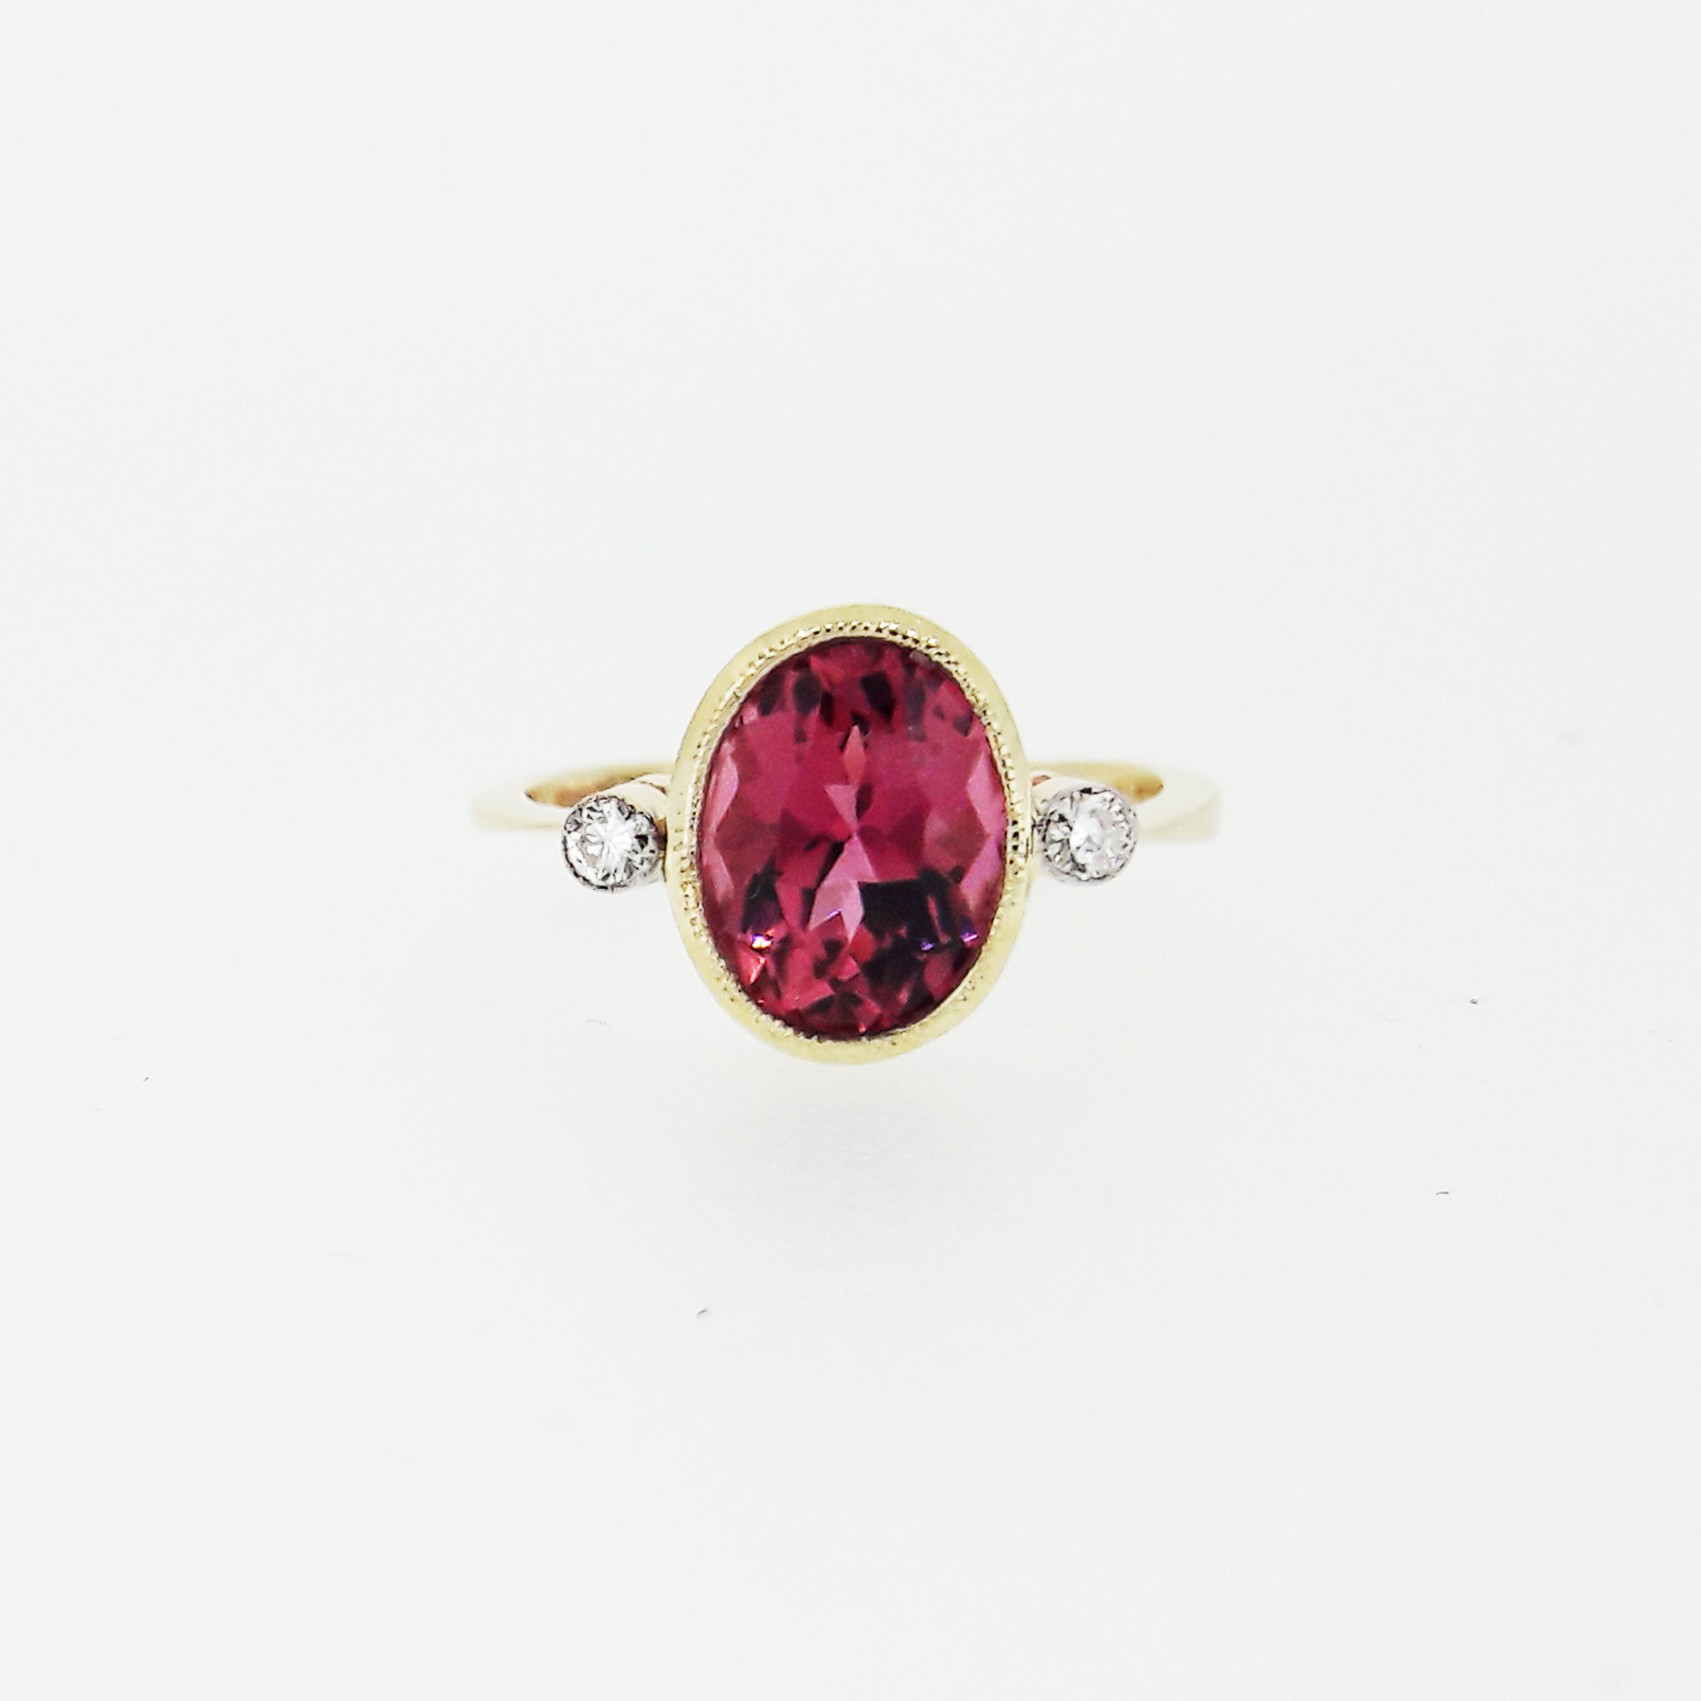 Tourmaline and diamond three stone ring